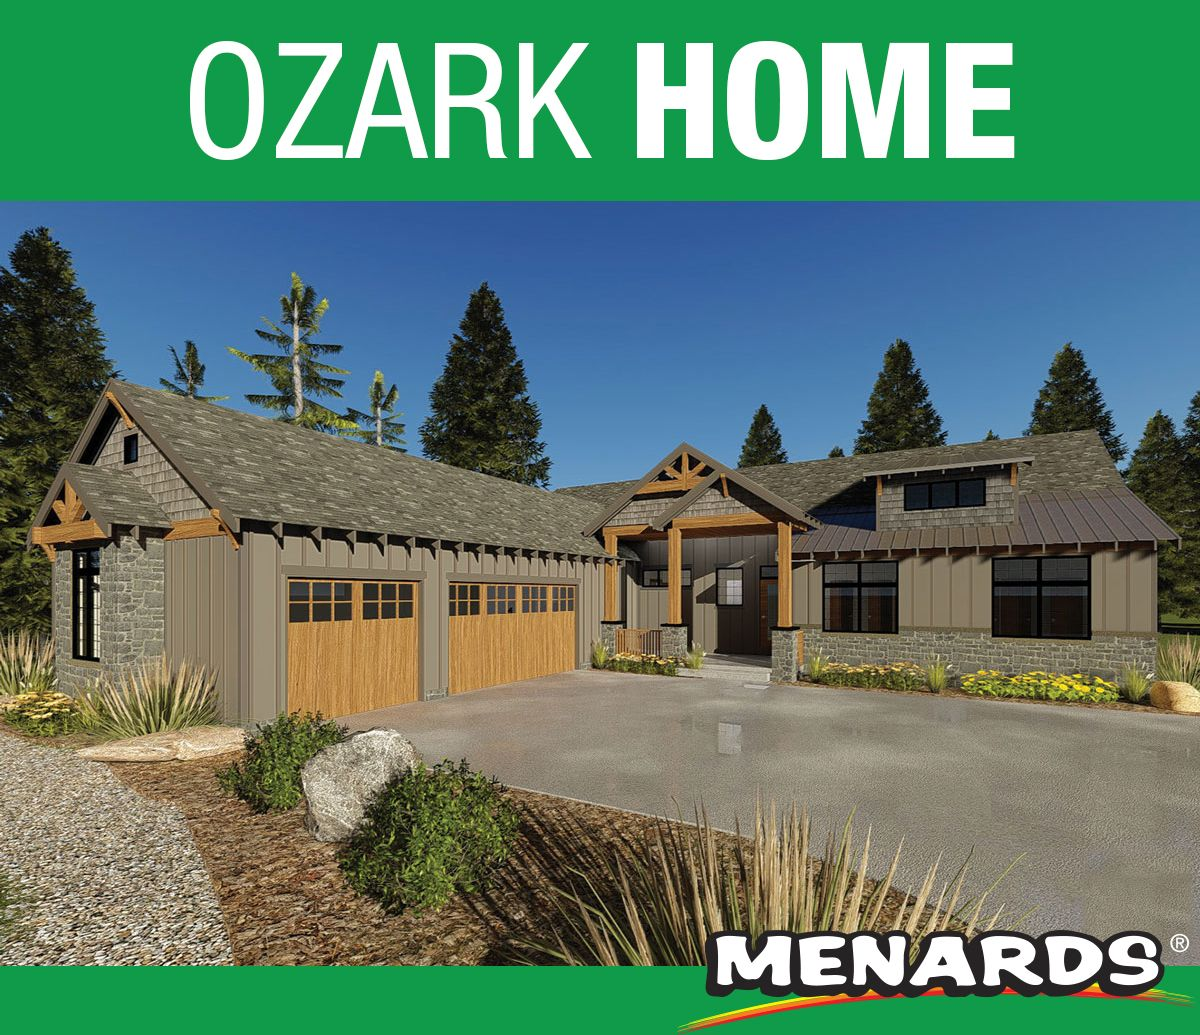 The Ozark Home Has An Appealing Blend Of Textures That Enhance The Exterior Of This Mountain Rustic Style 1 Story House Plan Wit House Plans Ozark Story House